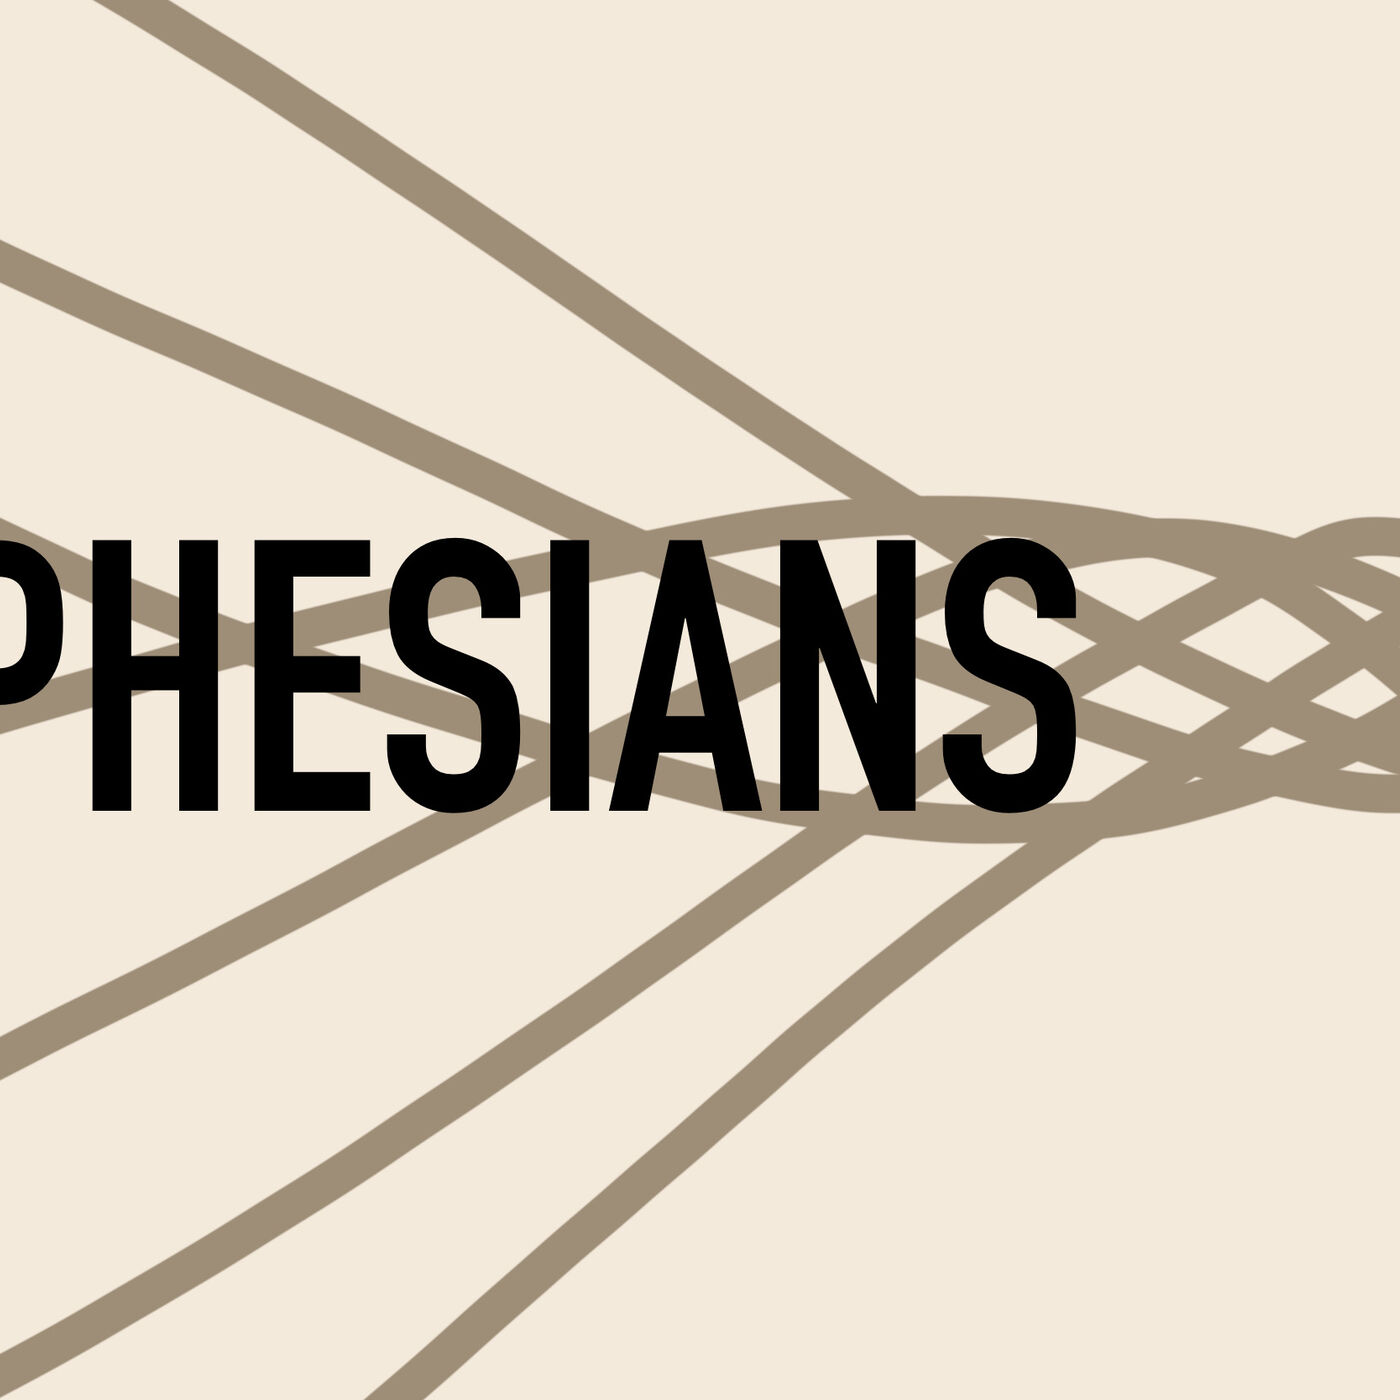 Ephesians 5:21 - Submission (Vespers)